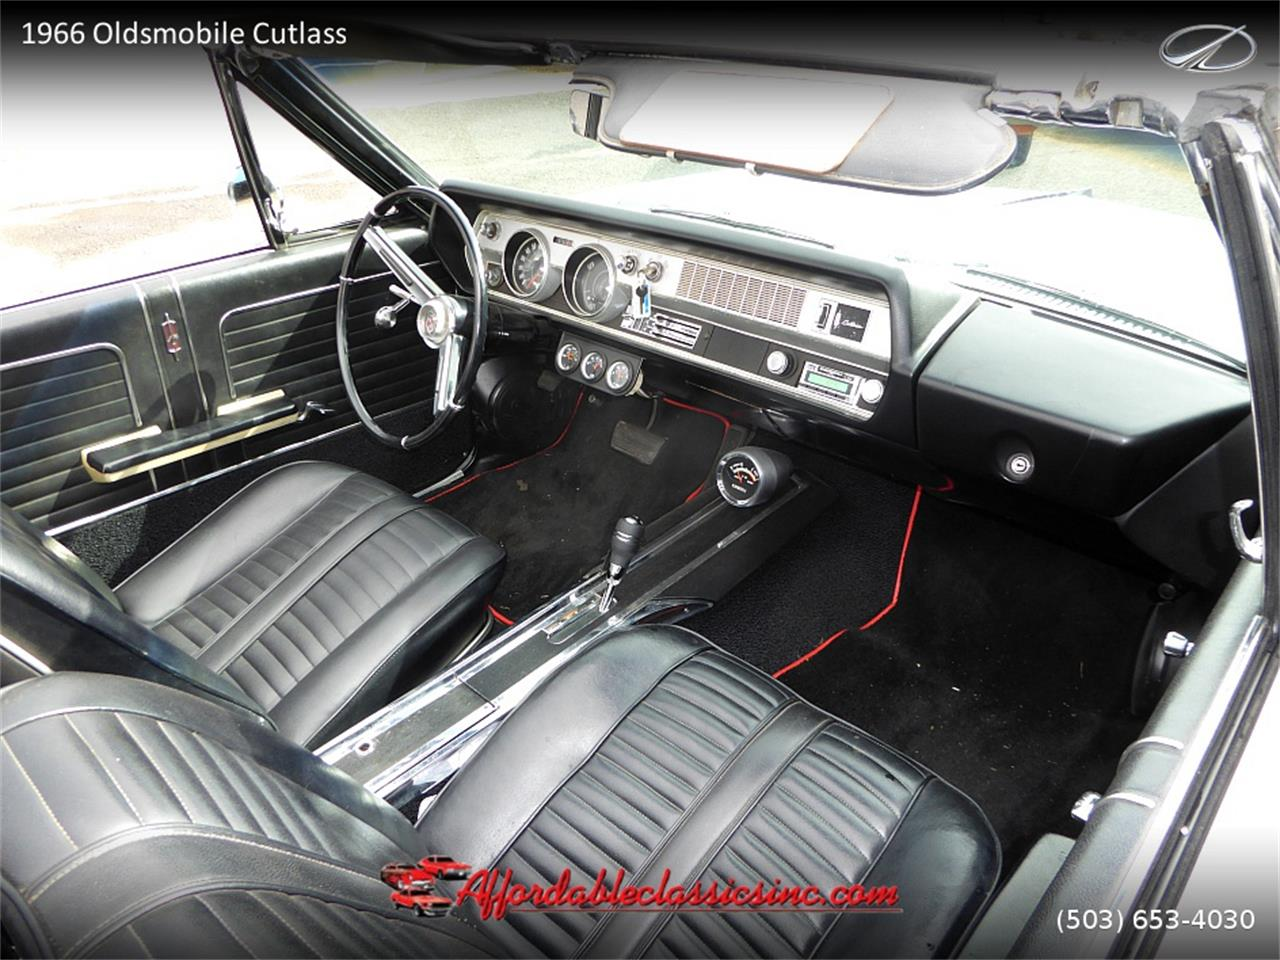 Large Picture of Classic '66 Cutlass - $25,500.00 Offered by Affordable Classics Inc - MN4C